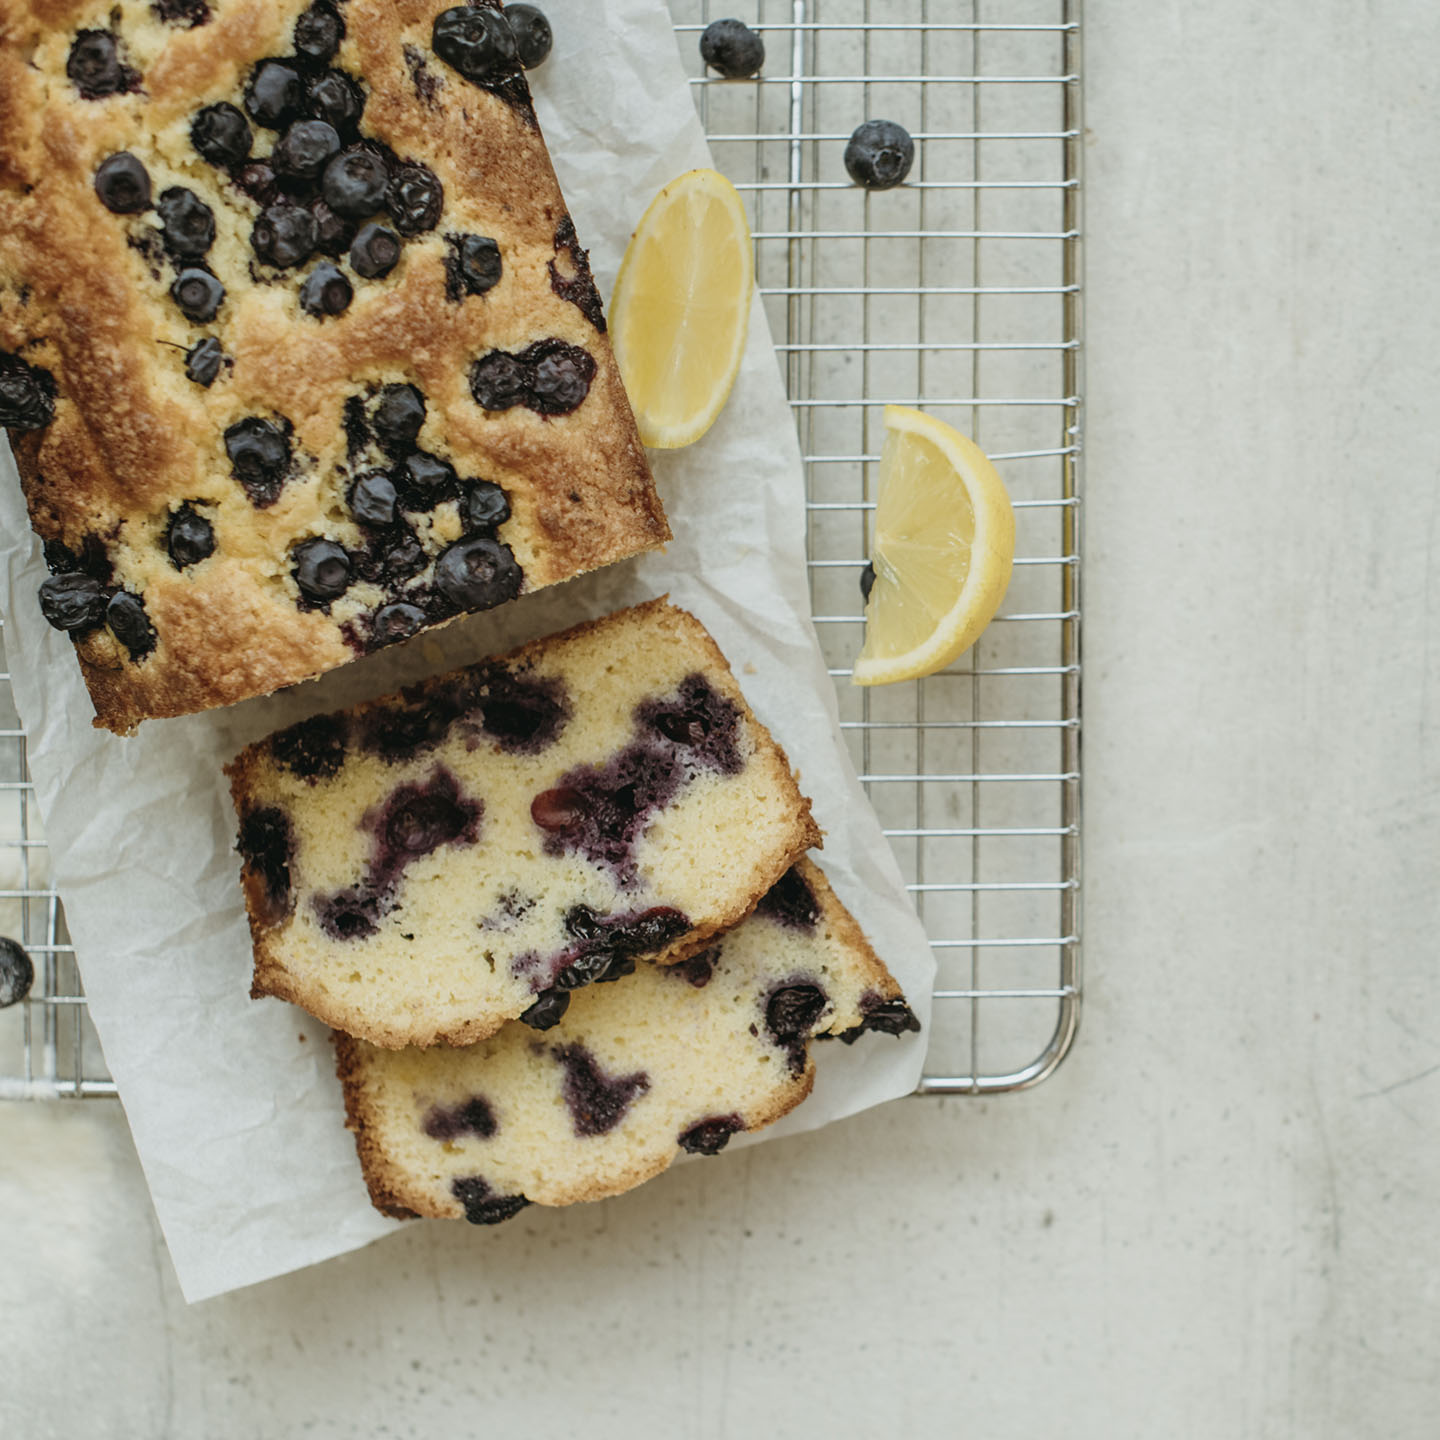 Le Moulin - Les recettes - Lemon and blueberry cake